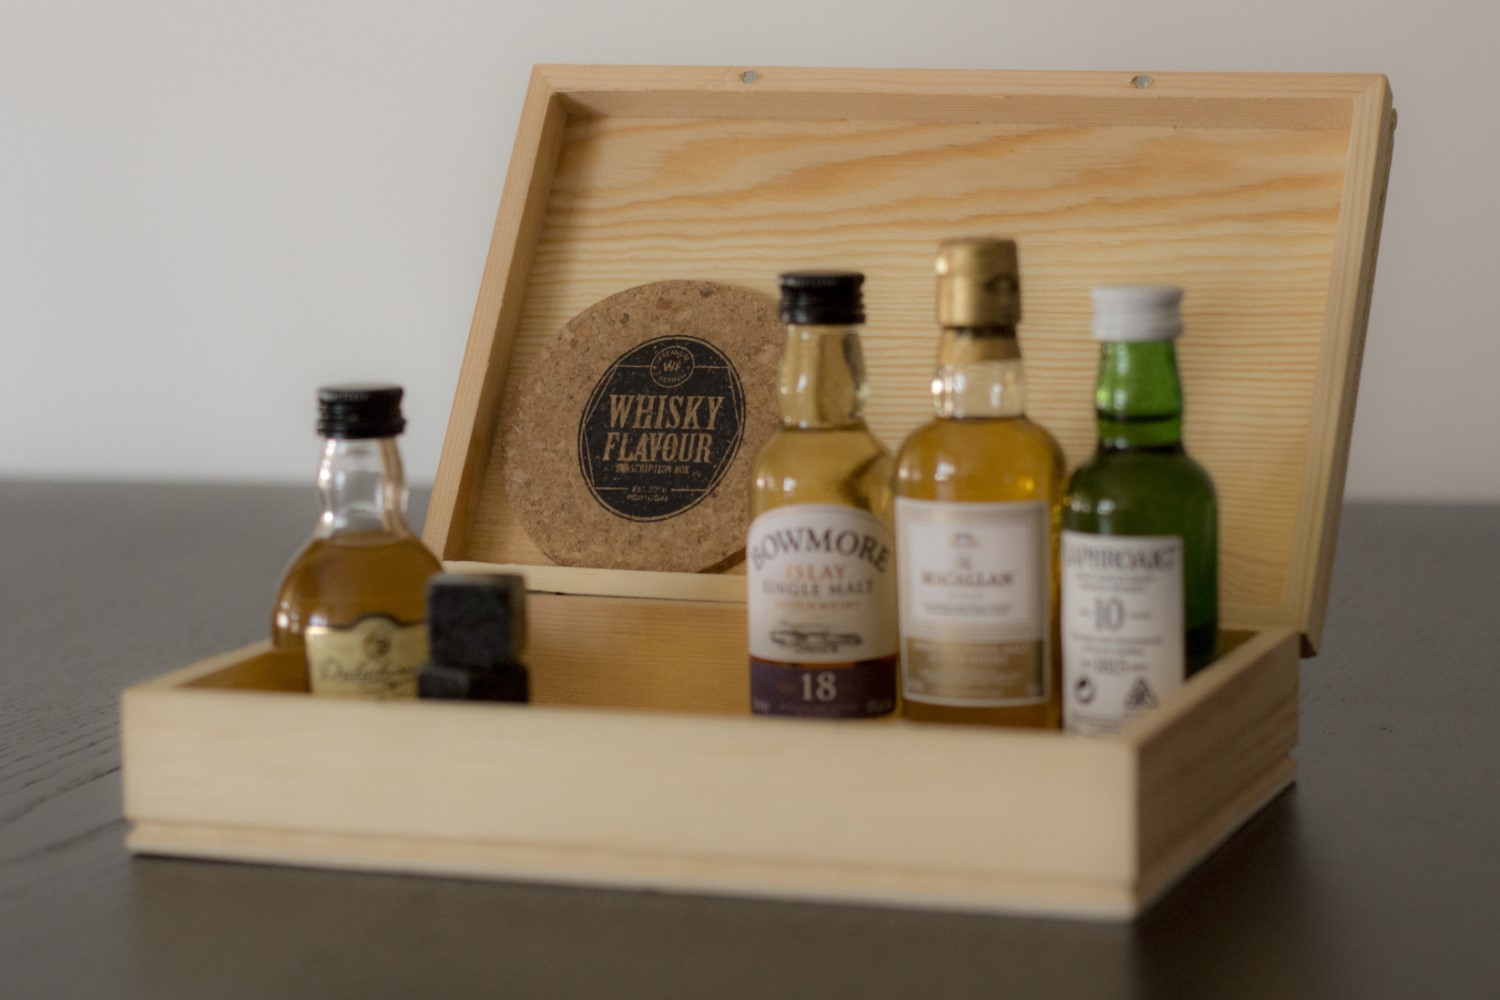 The Whisky Flavour Subscription Box with miniatures